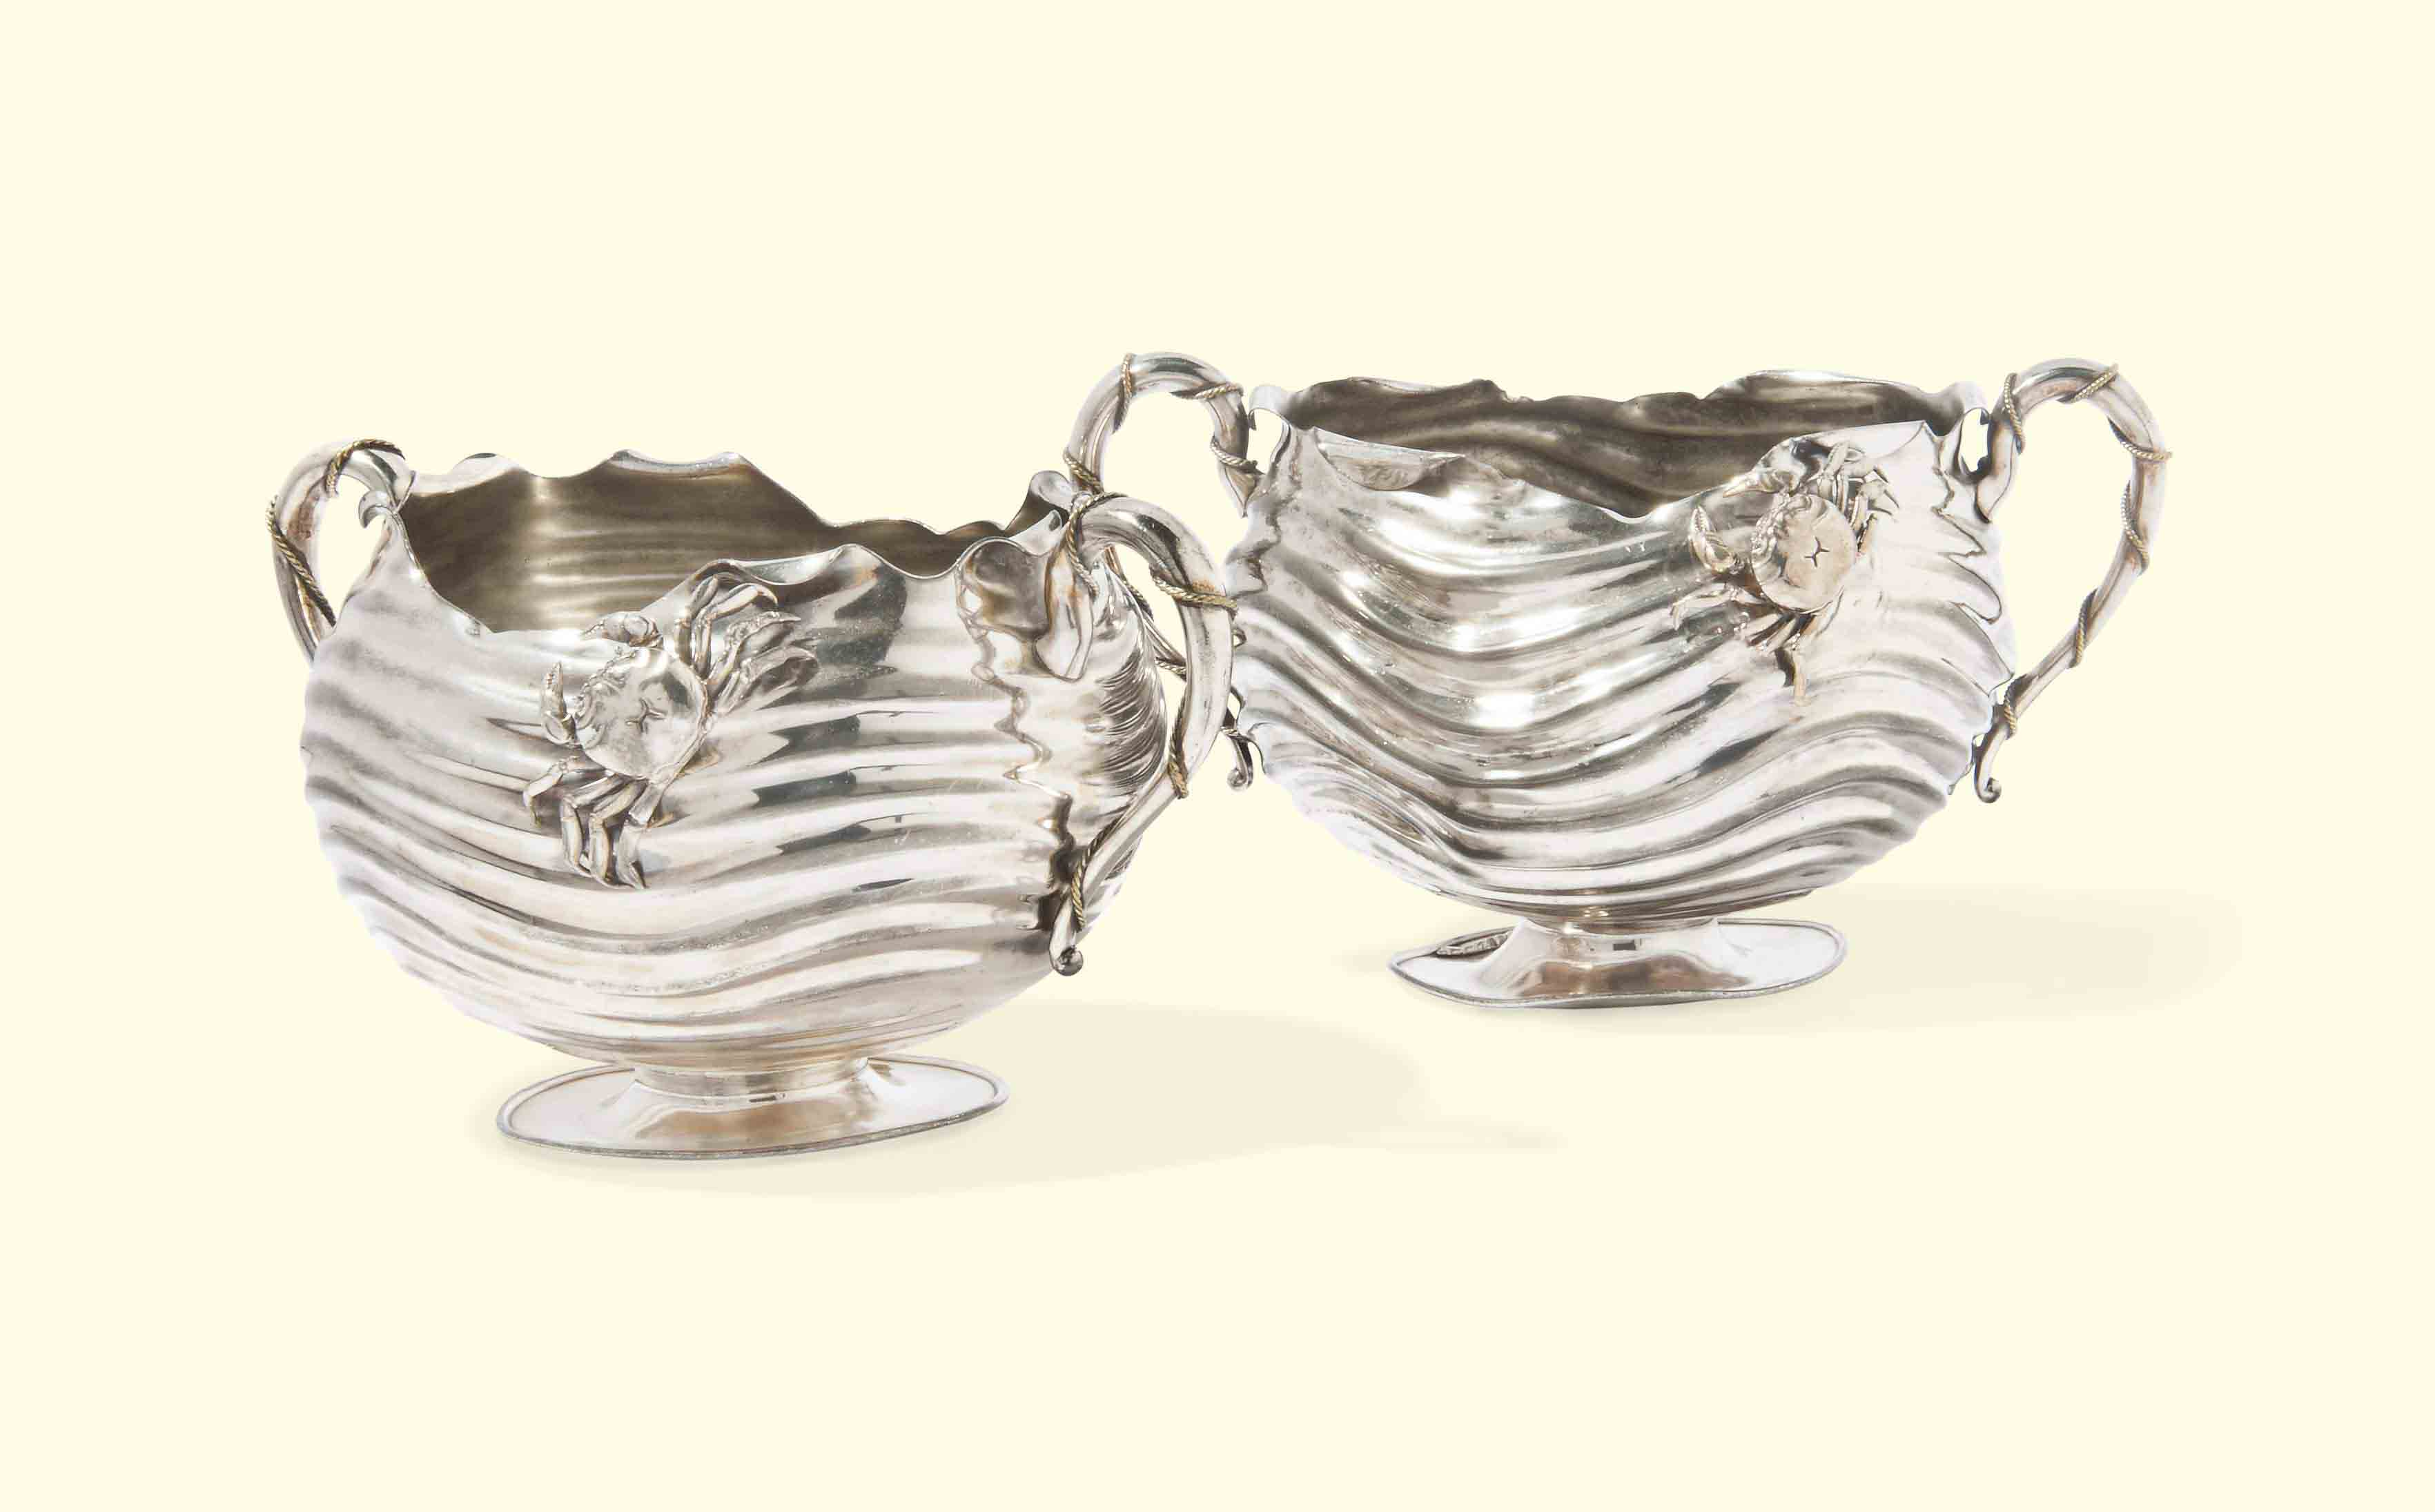 A PAIR OF AMERICAN ELECTROPLATED TWO-HANDLED BOWLS OF NAUTICAL DESIGN